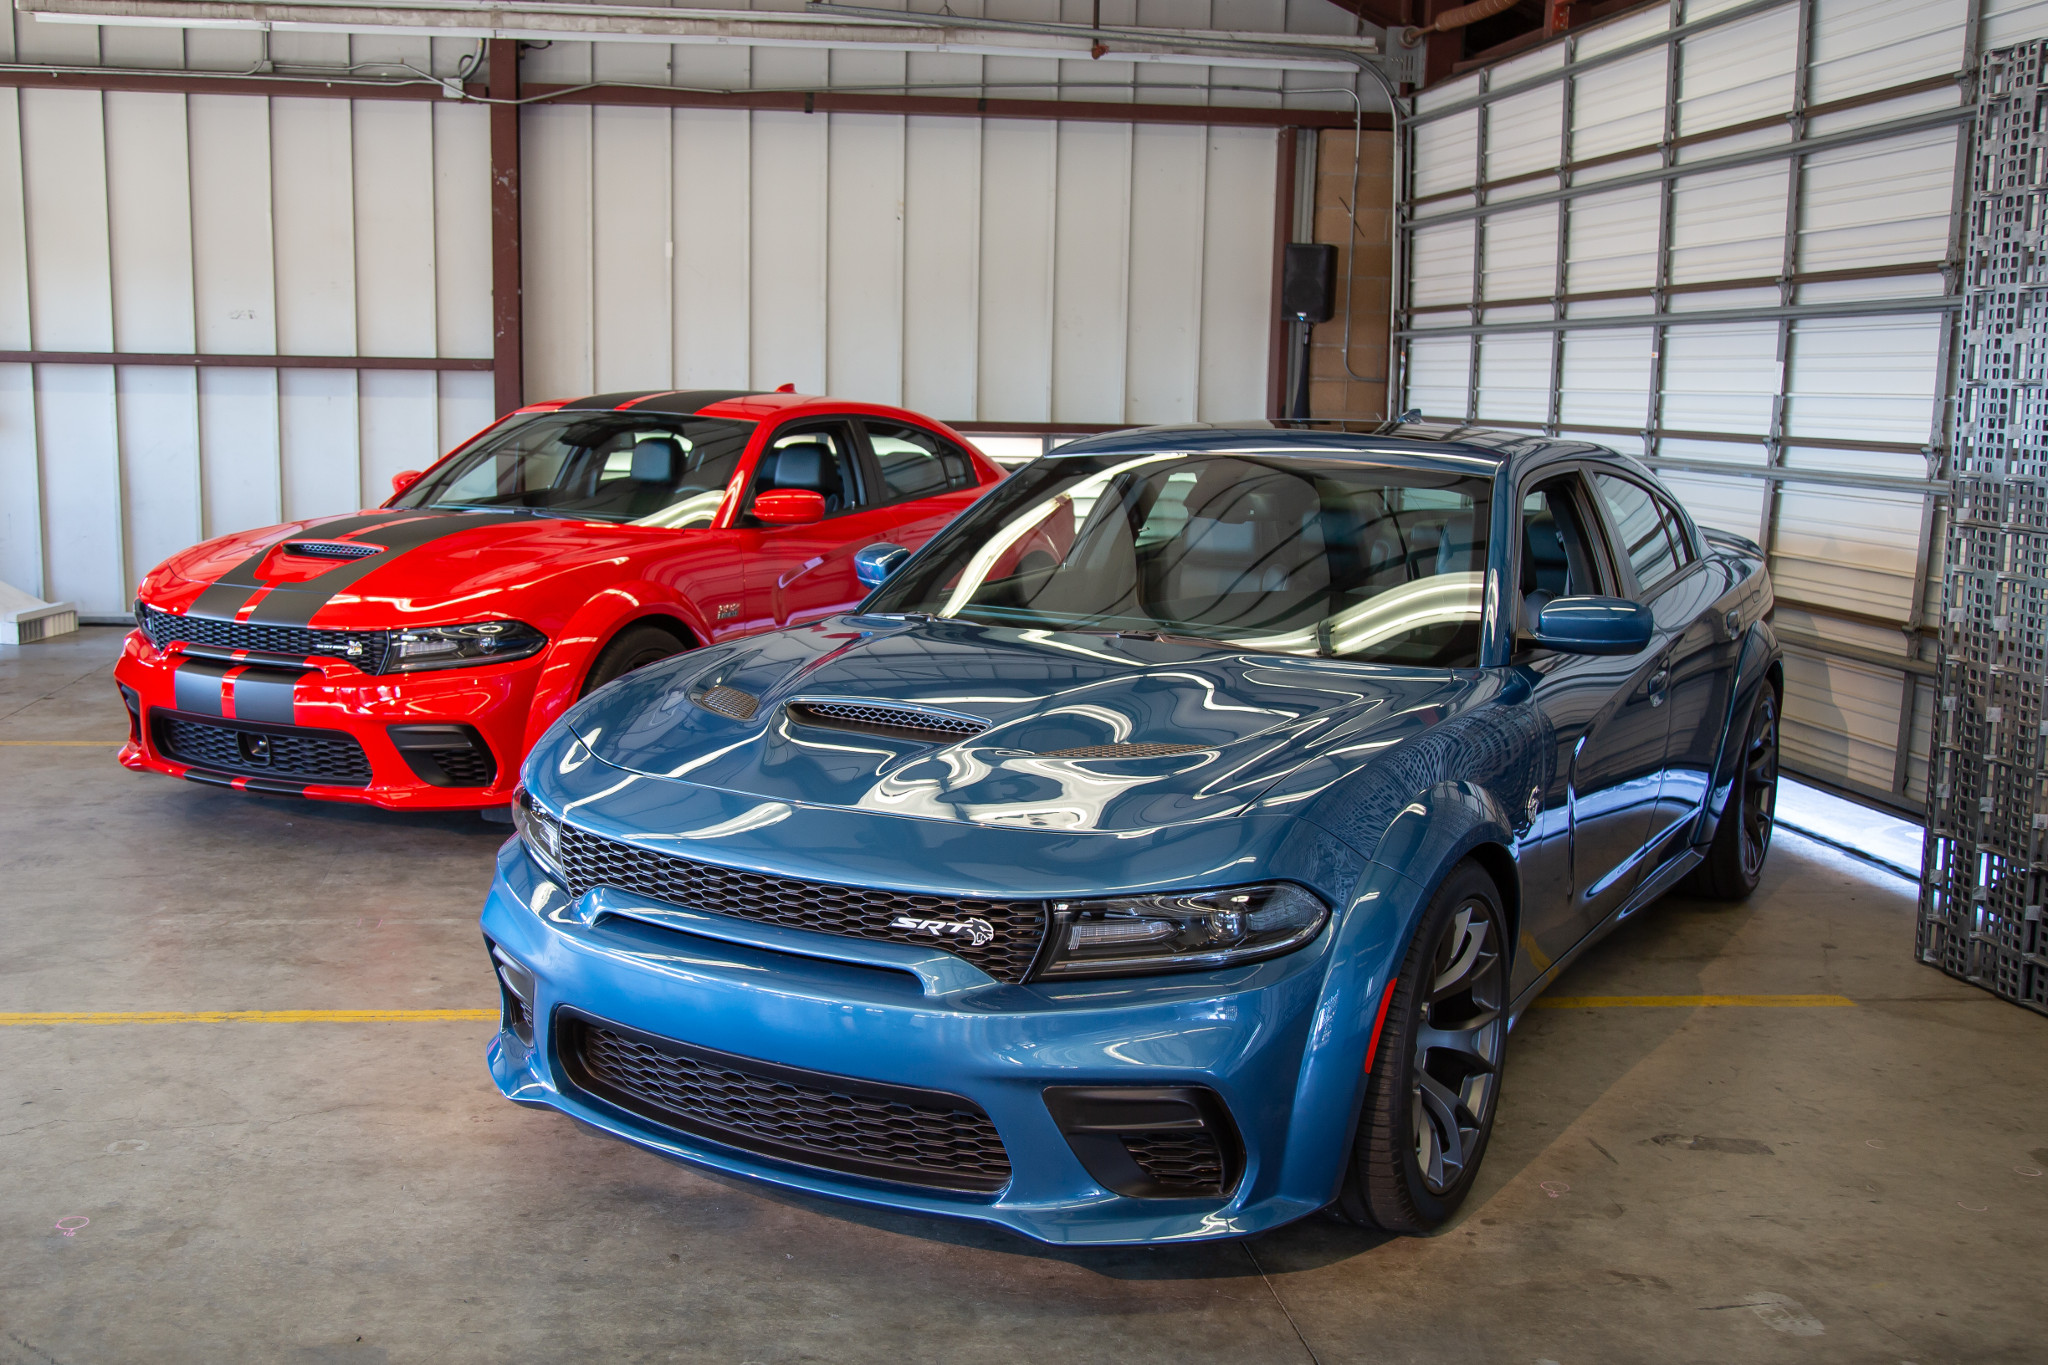 2020 Dodge Charger Scat Pack and Hellcat Widebody: 7 Pros and 3 Cons